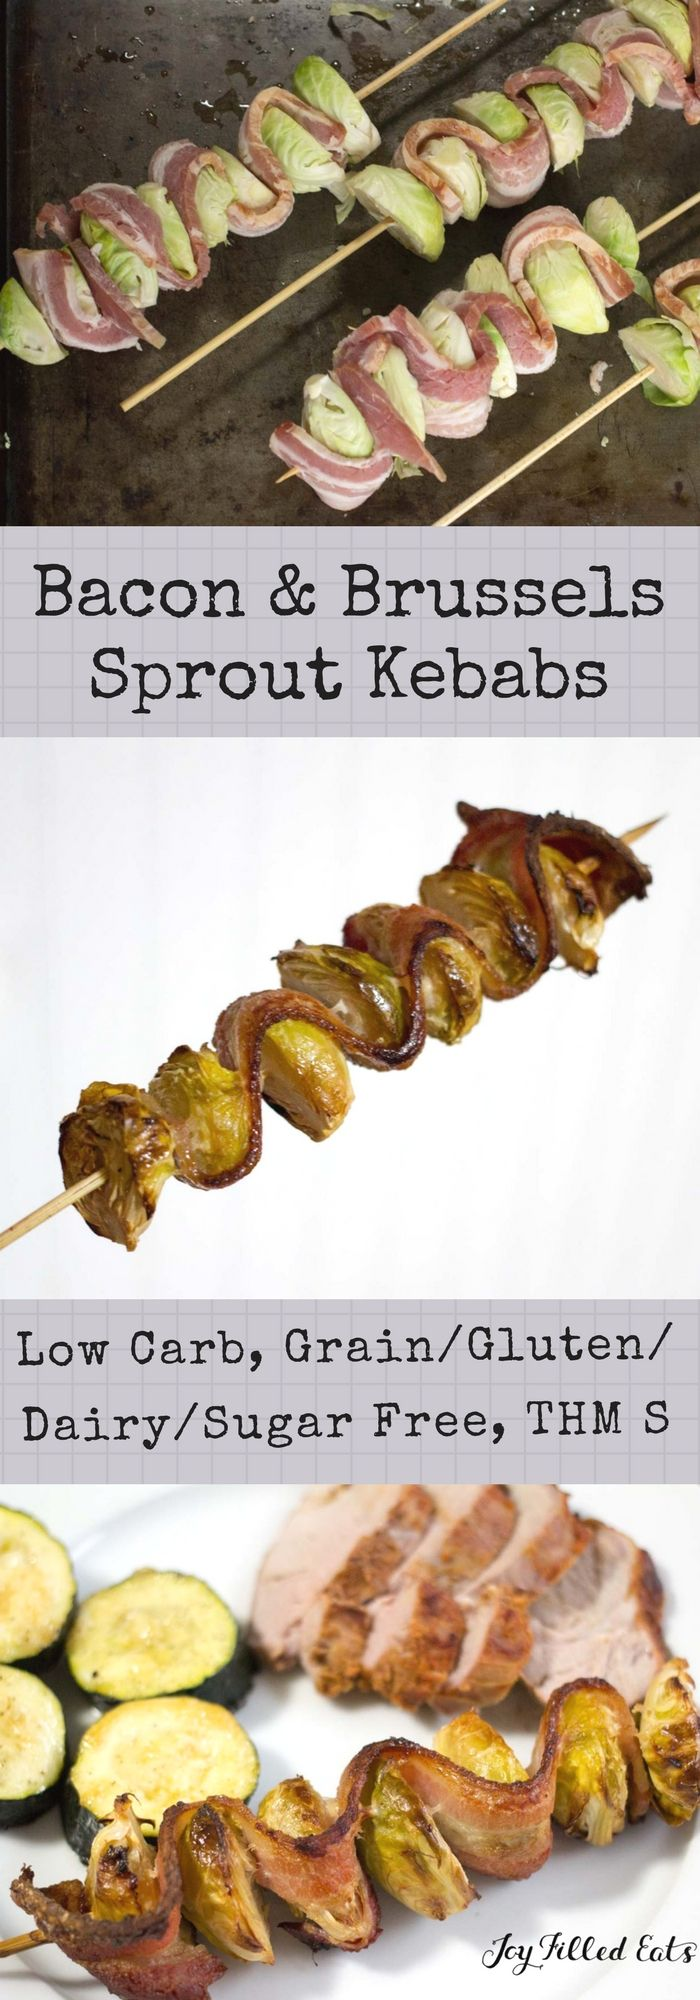 Bacon & Brussels Sprout Kebabs - Low Carb, Grain Gluten Sugar Free, THM S - Could a two ingredient recipe ever be more delicious? I doubt it. These Bacon & Brussels Sprout Kebabs were a hit with my entire family. via @joyfilledeats